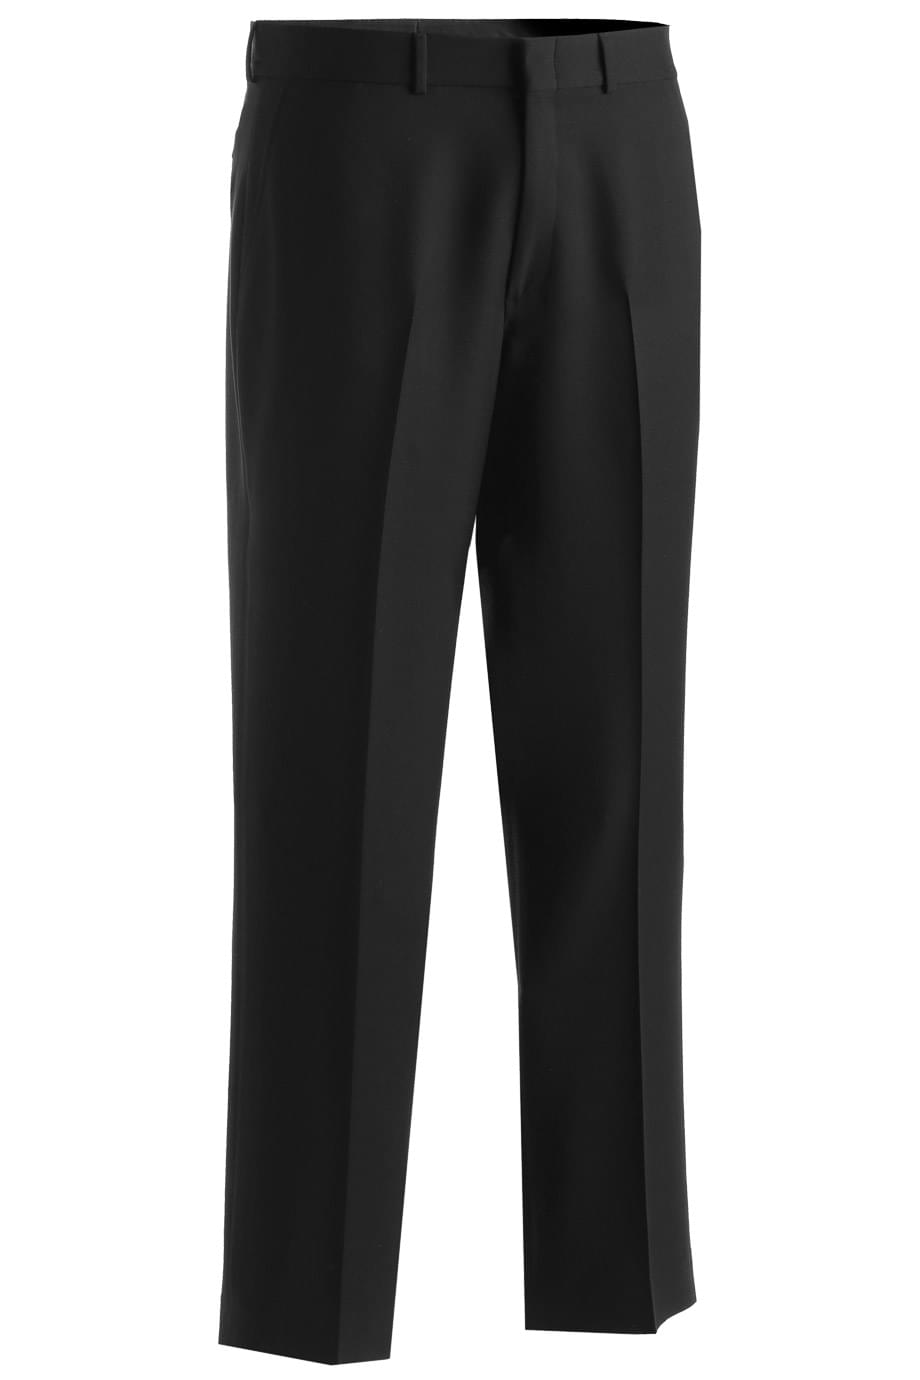 REDWOOD & ROSS® SYNERGY DRESS PANT